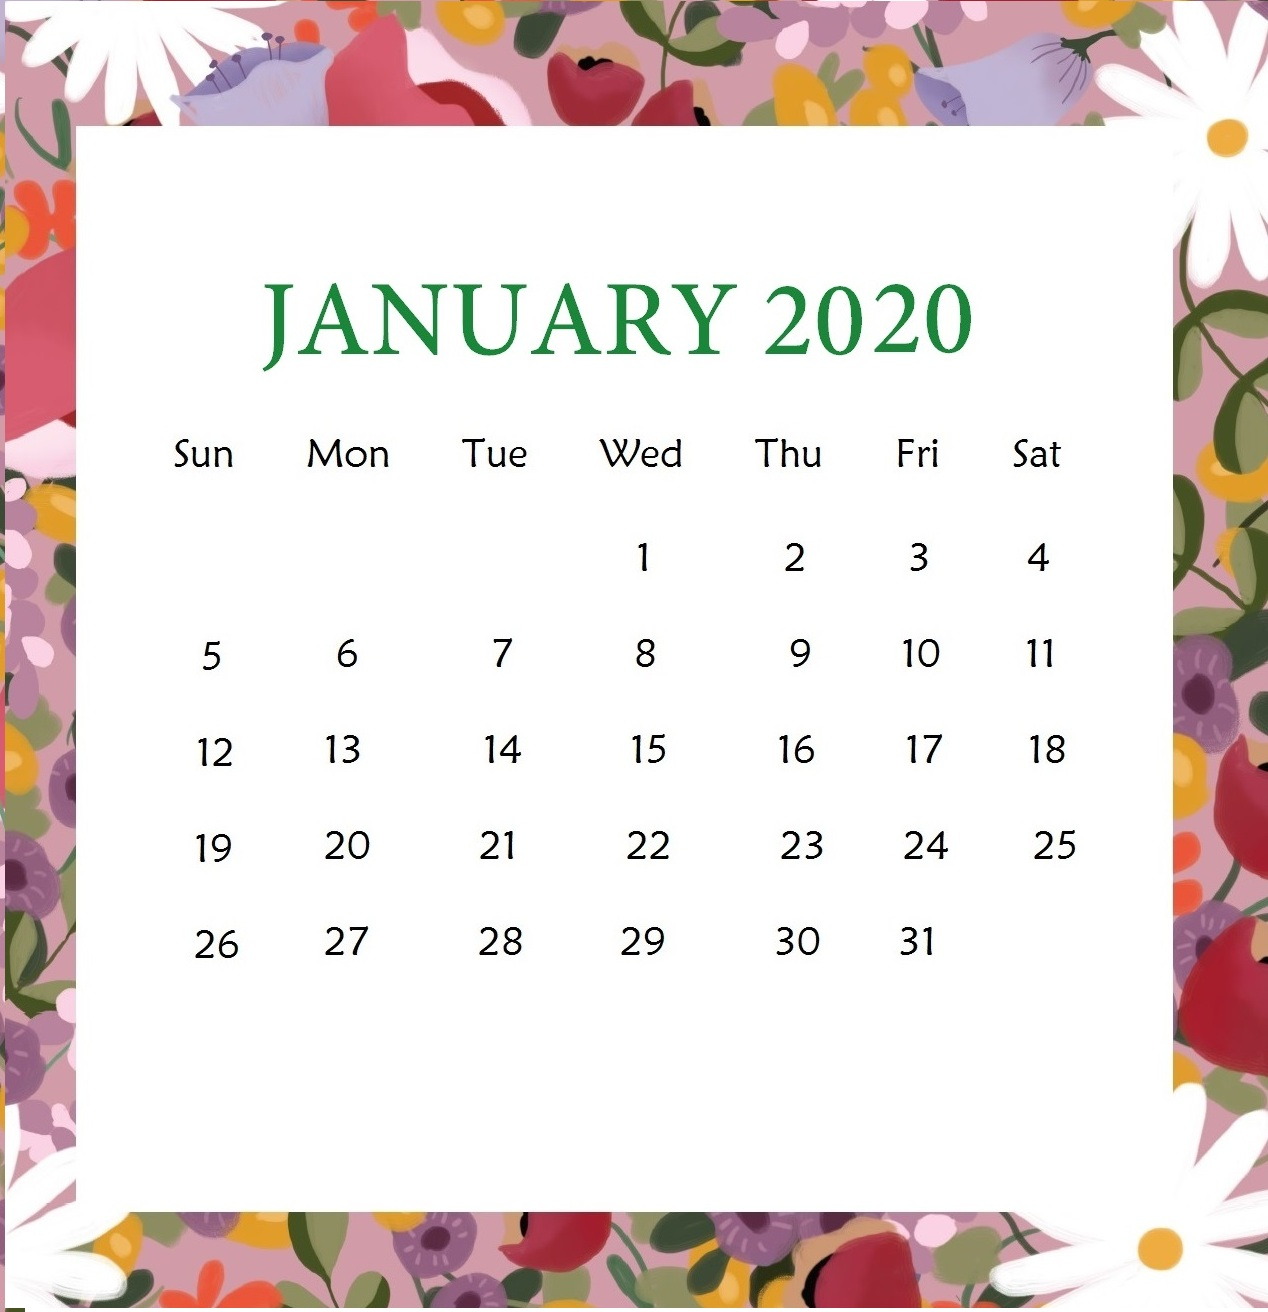 January Calendar For 2020 Printable